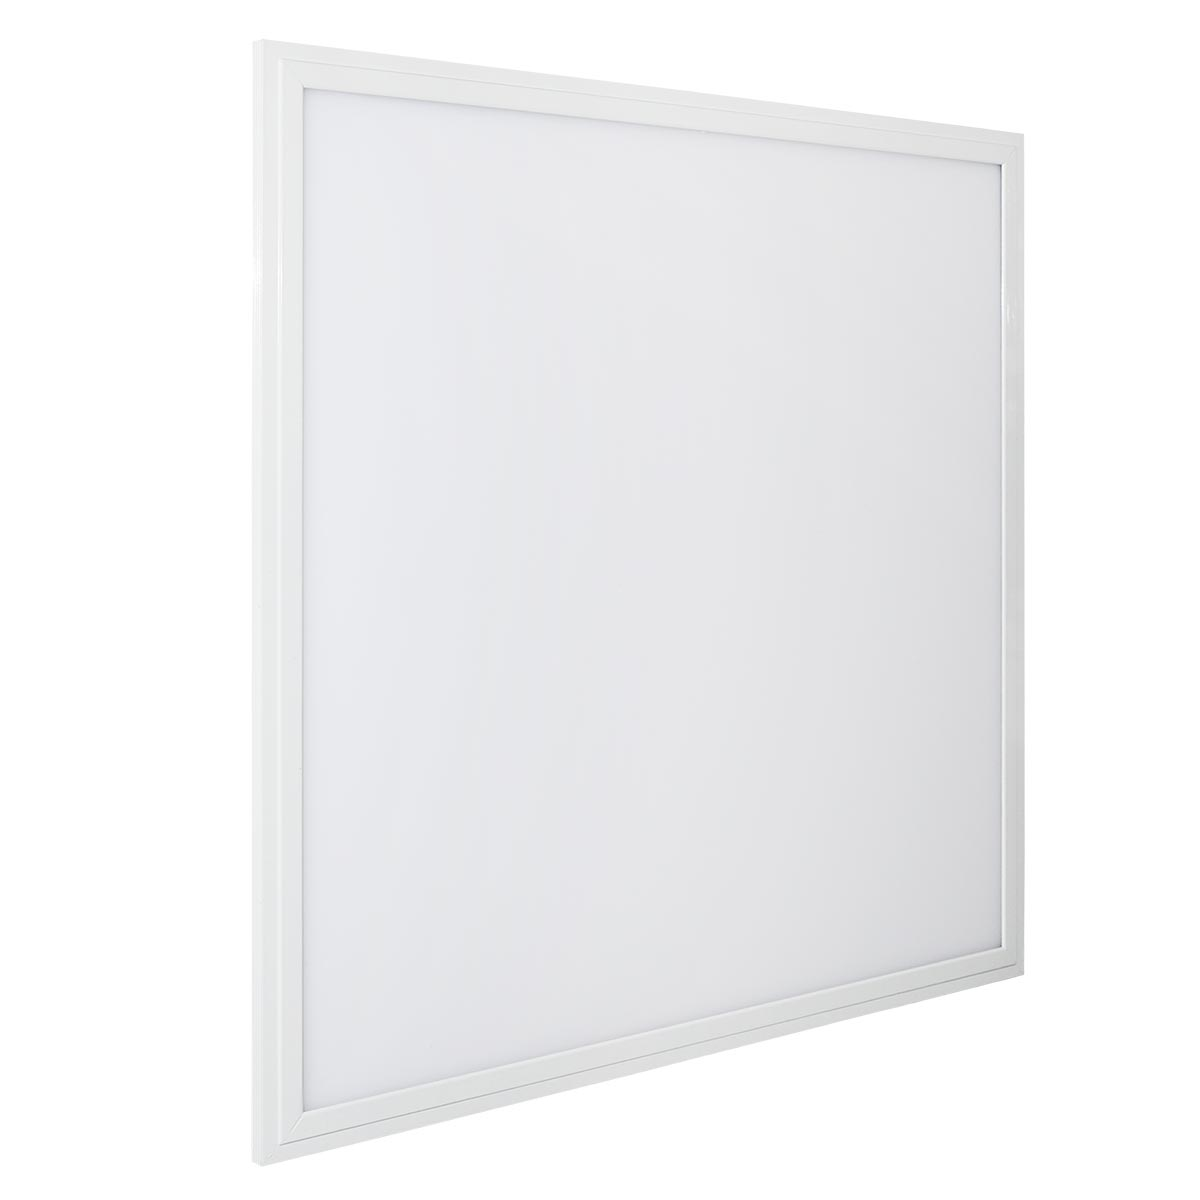 LED Light Panel 624x624 Weiss 40W 4000K 4'600lm UGR19 IP20